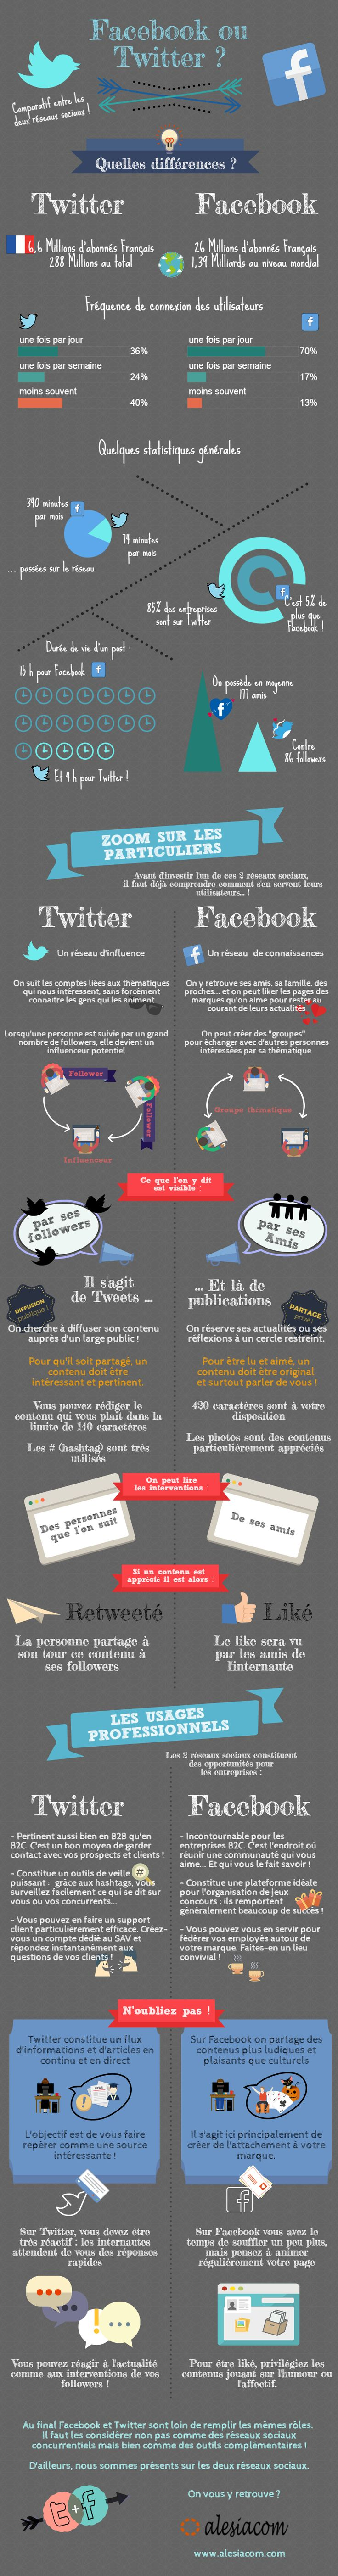 Infographie : Facebook ou Twitter, comment choisir ?